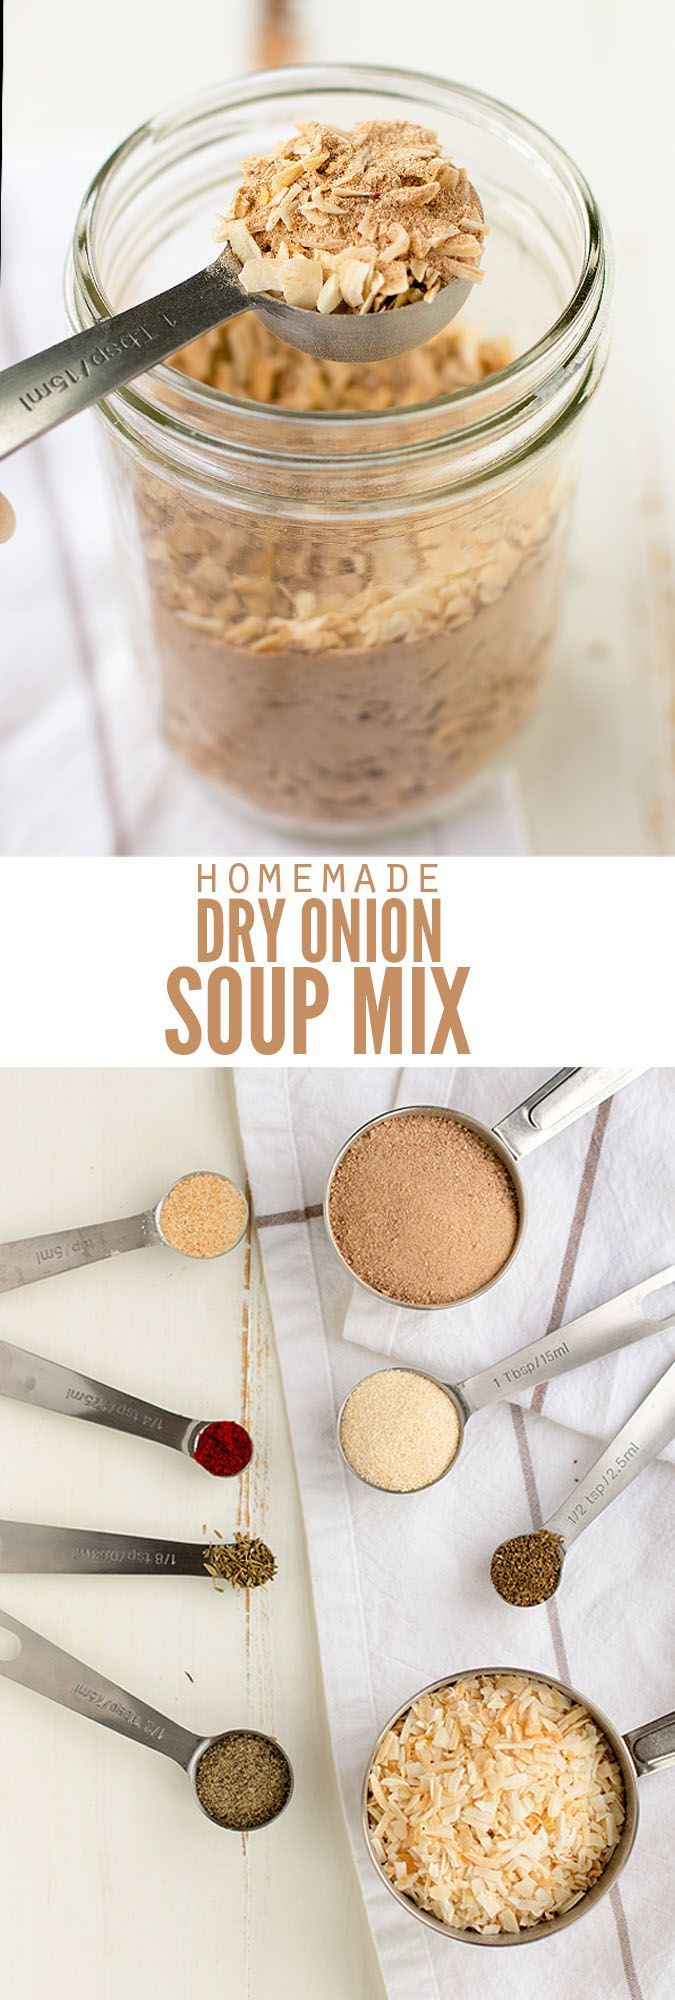 Skip the packets of Lipton dry onion soup mix and make this homemade version instead. You need just 4 simple ingredients and you probably already have them! :: DontWastetheCrumbs.com